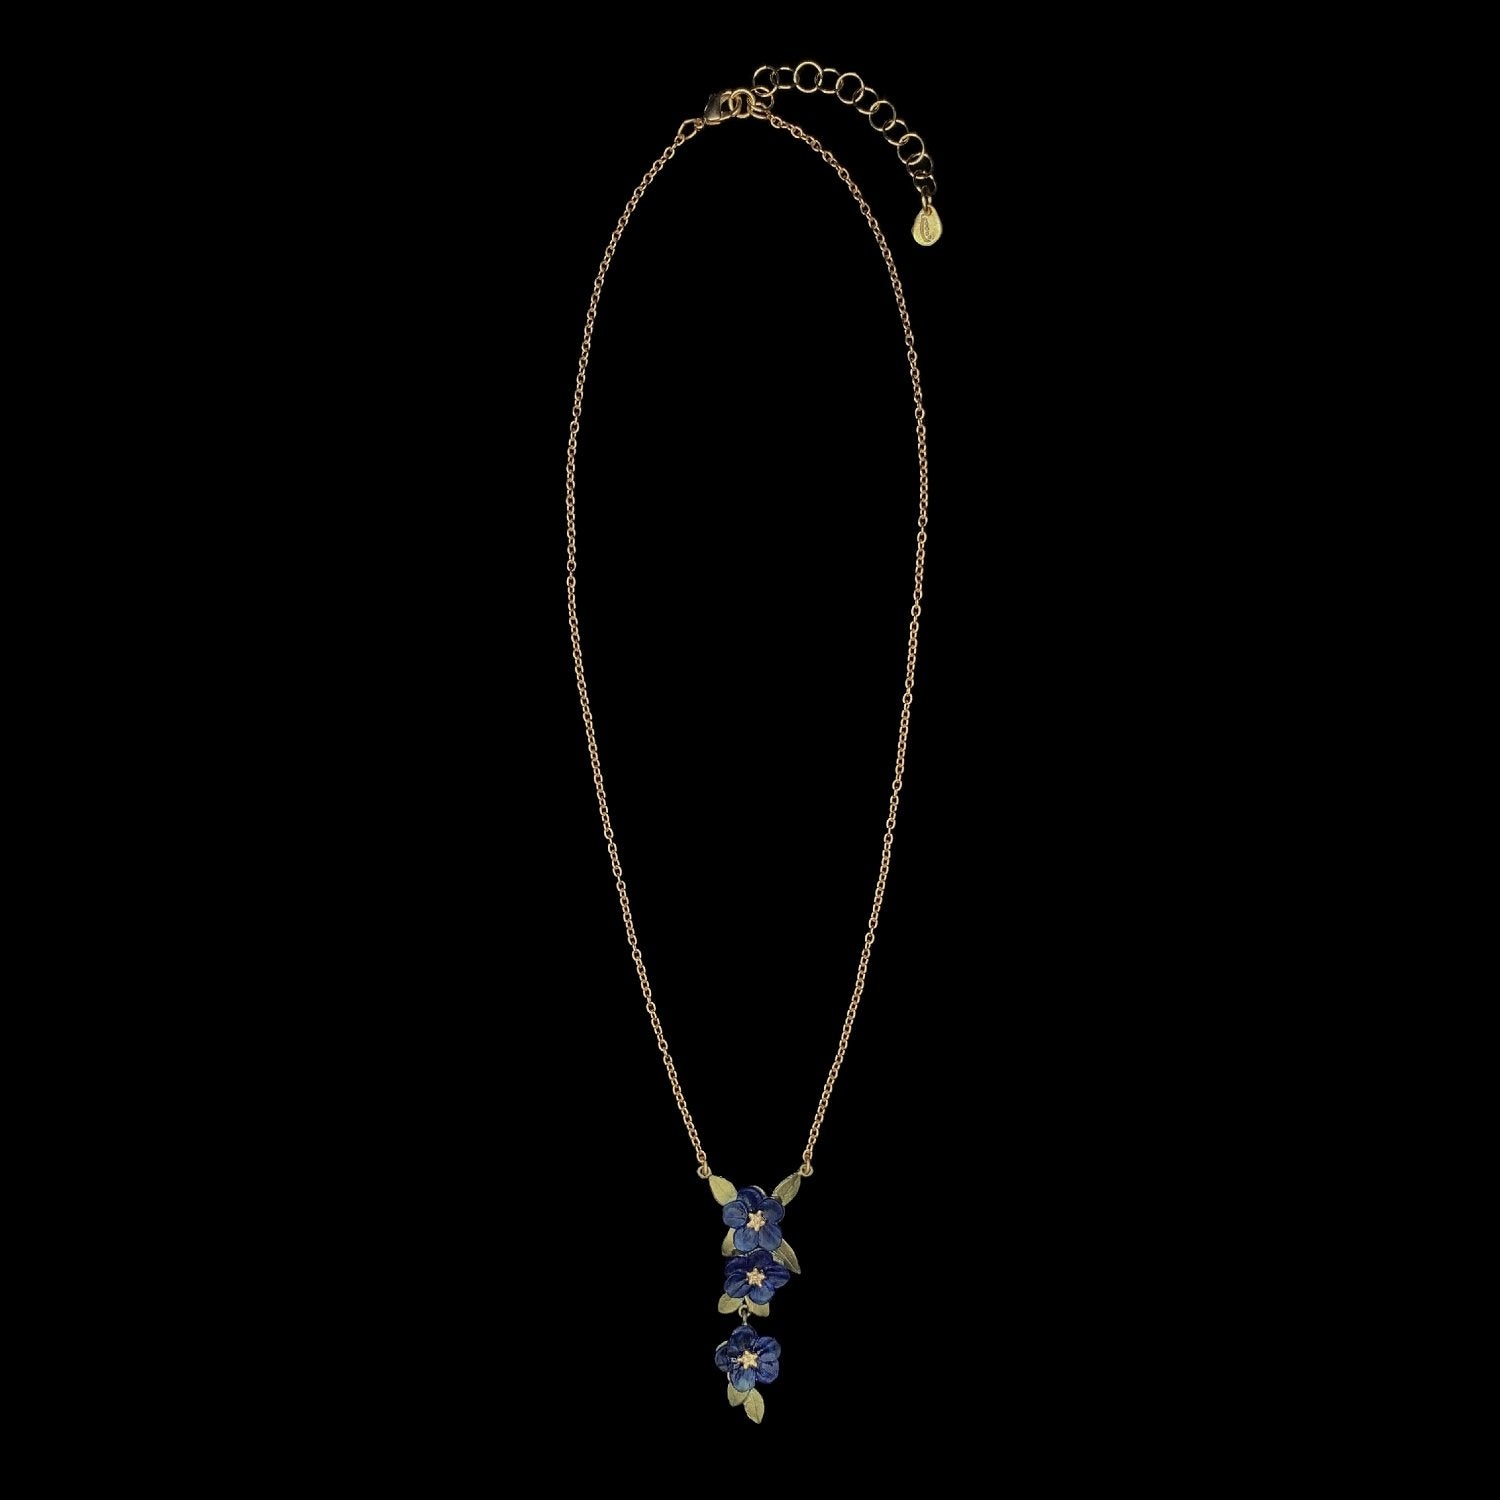 Blue Violet Pendant - Triple Flower